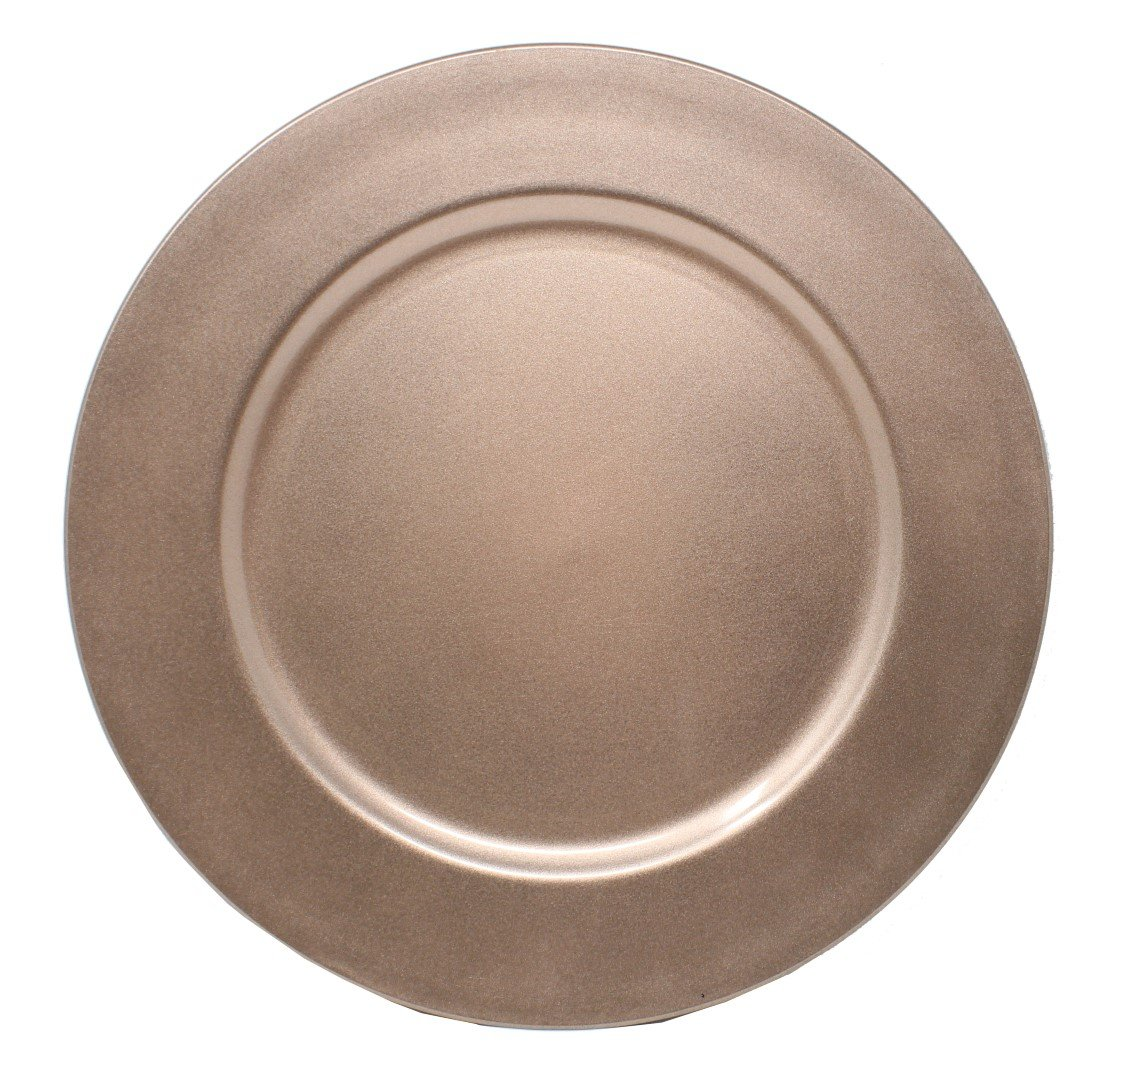 Ms Lovely Charger Plates - 13 Inch - Set of 6 - Rose Gold